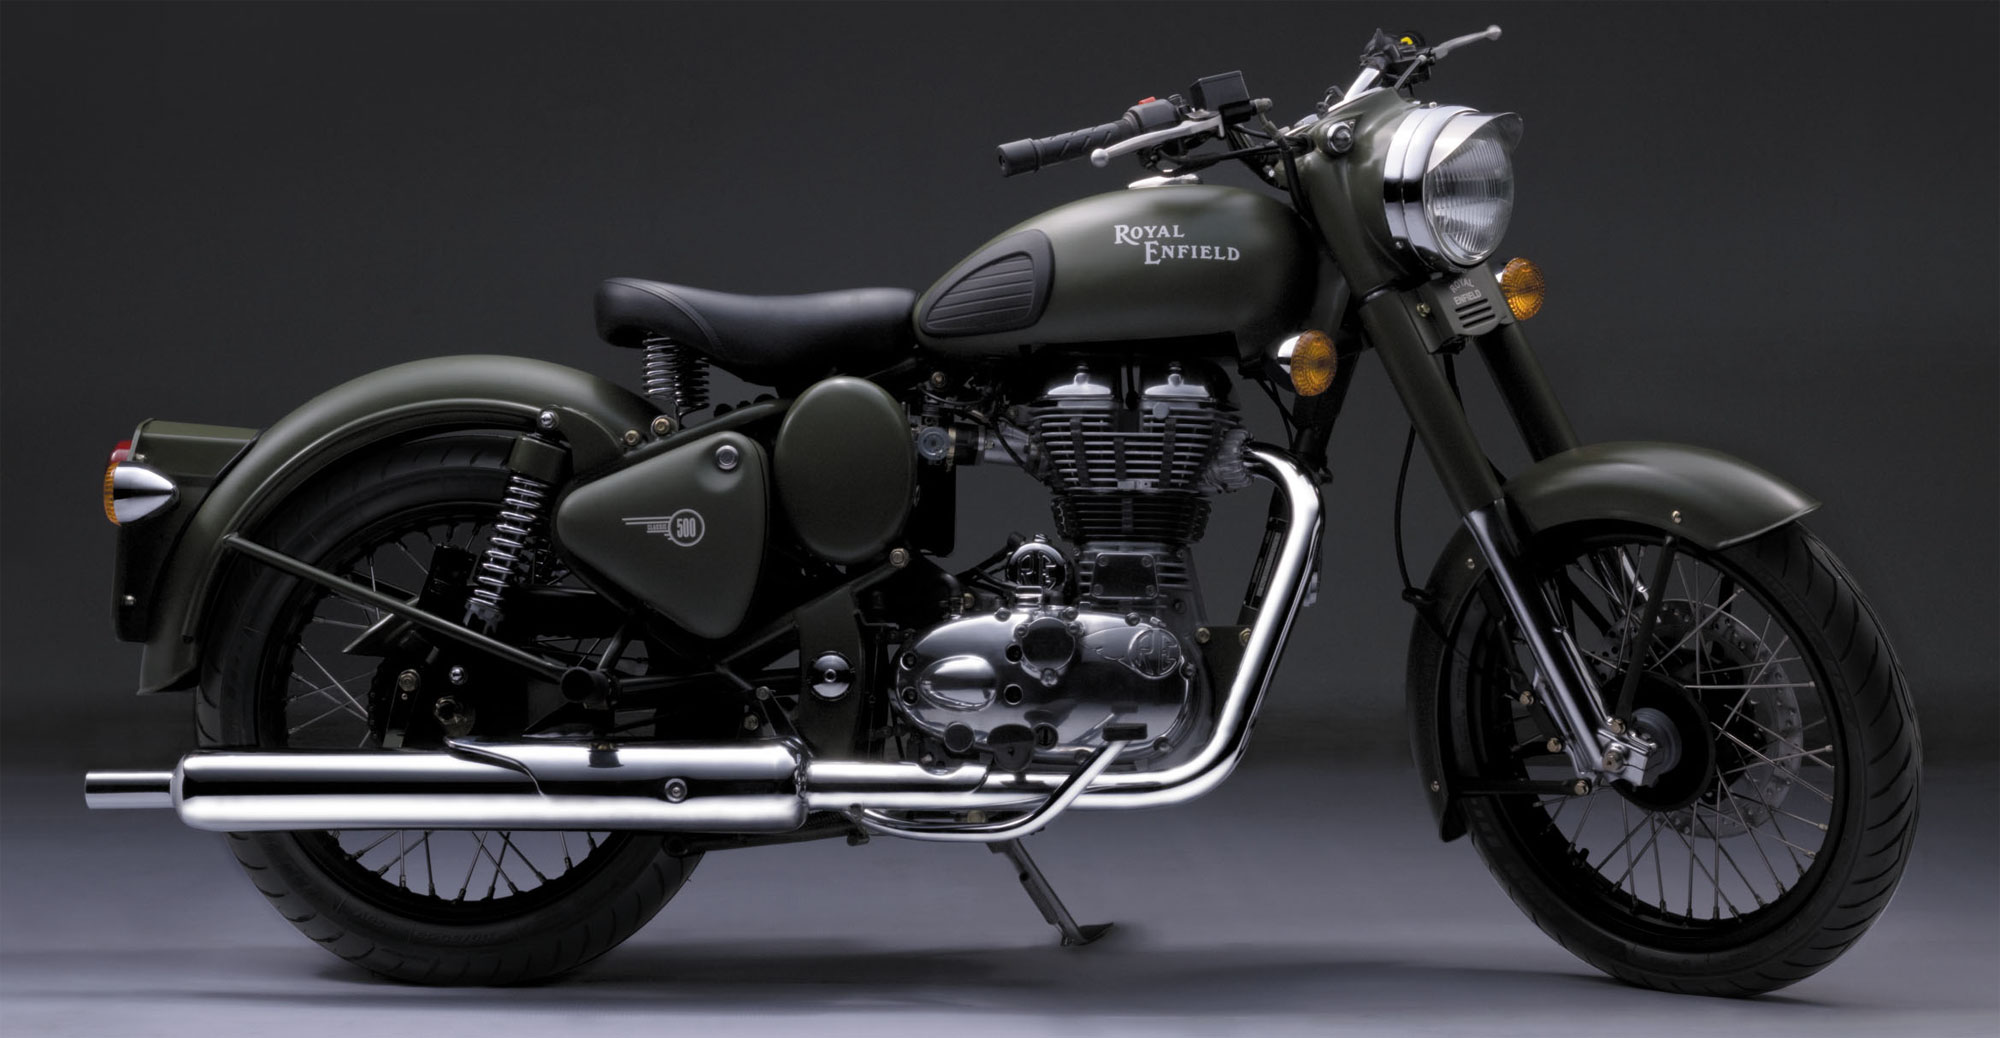 Royal Enfield Bullet 350 Army 1997 images #122773